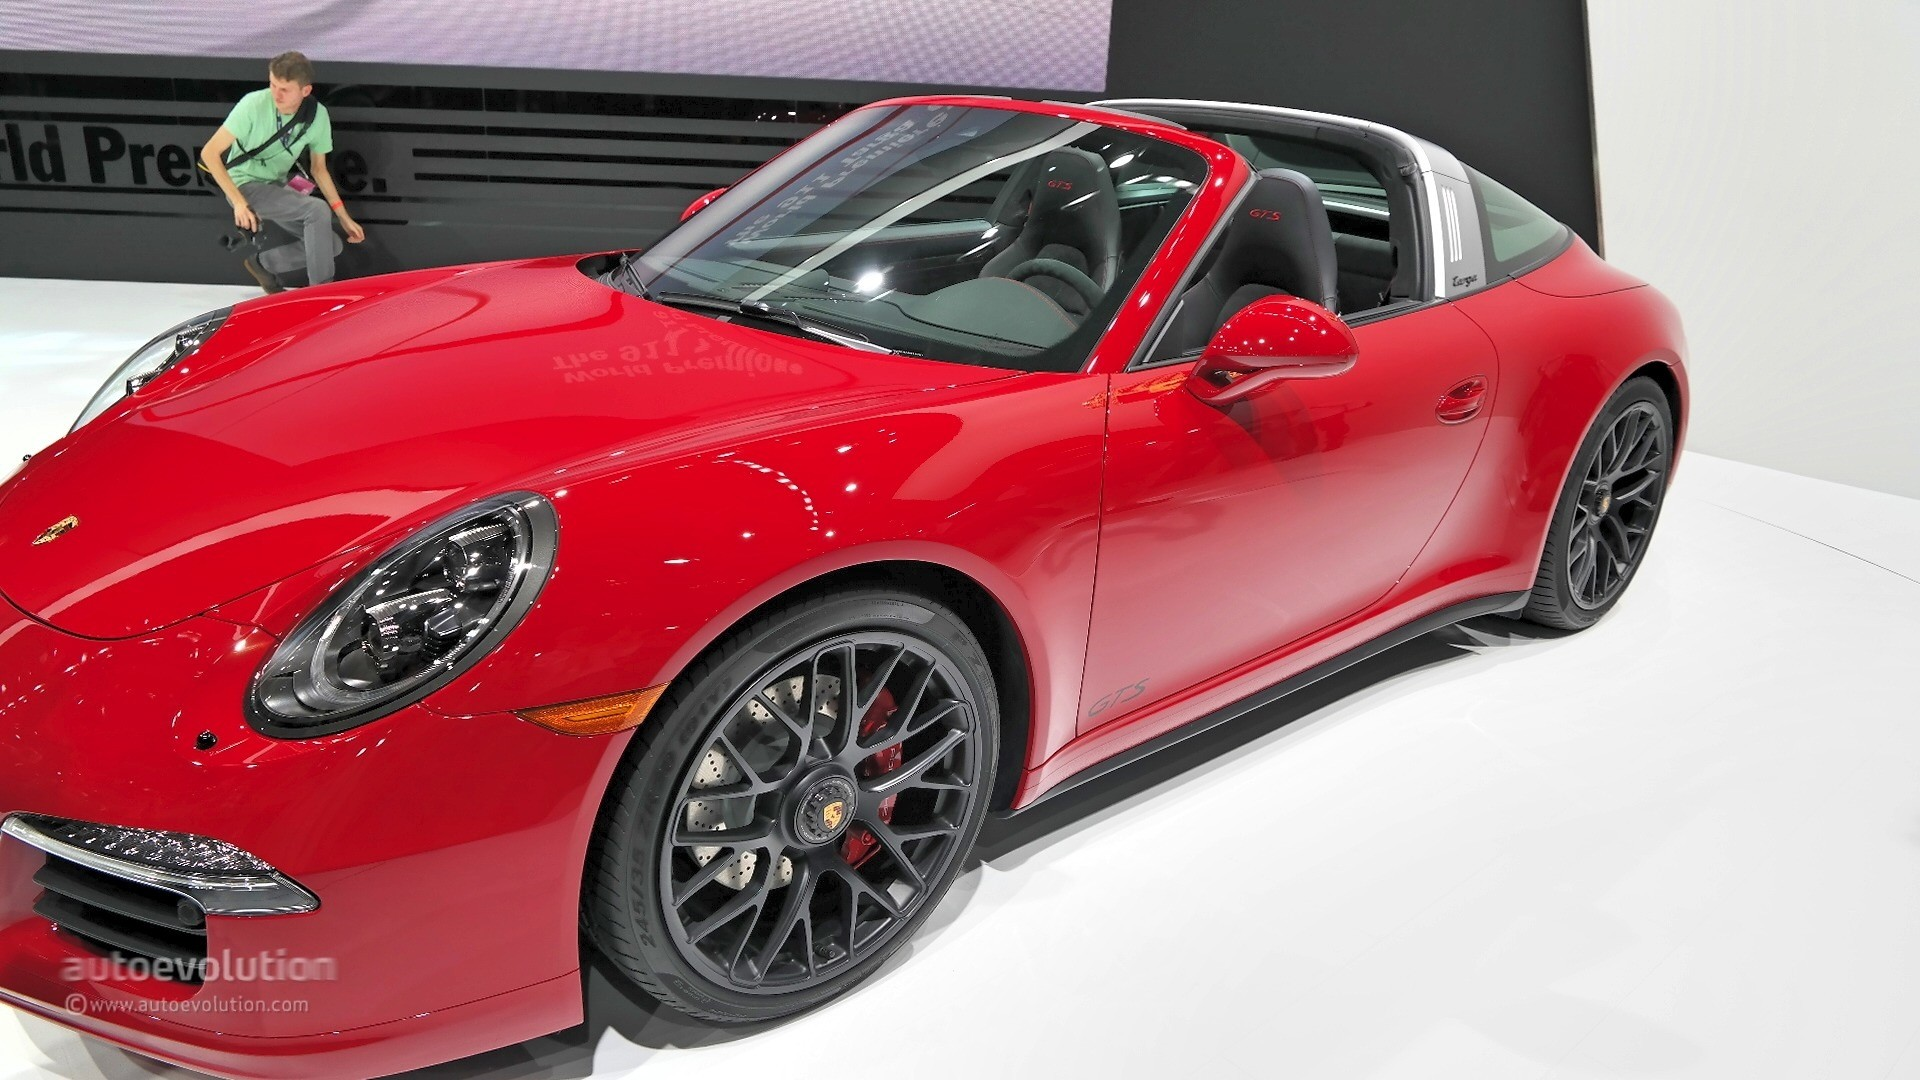 Porsche 911 targa 4 gts combines retro and sport perfectly for detroit live photos autoevolution